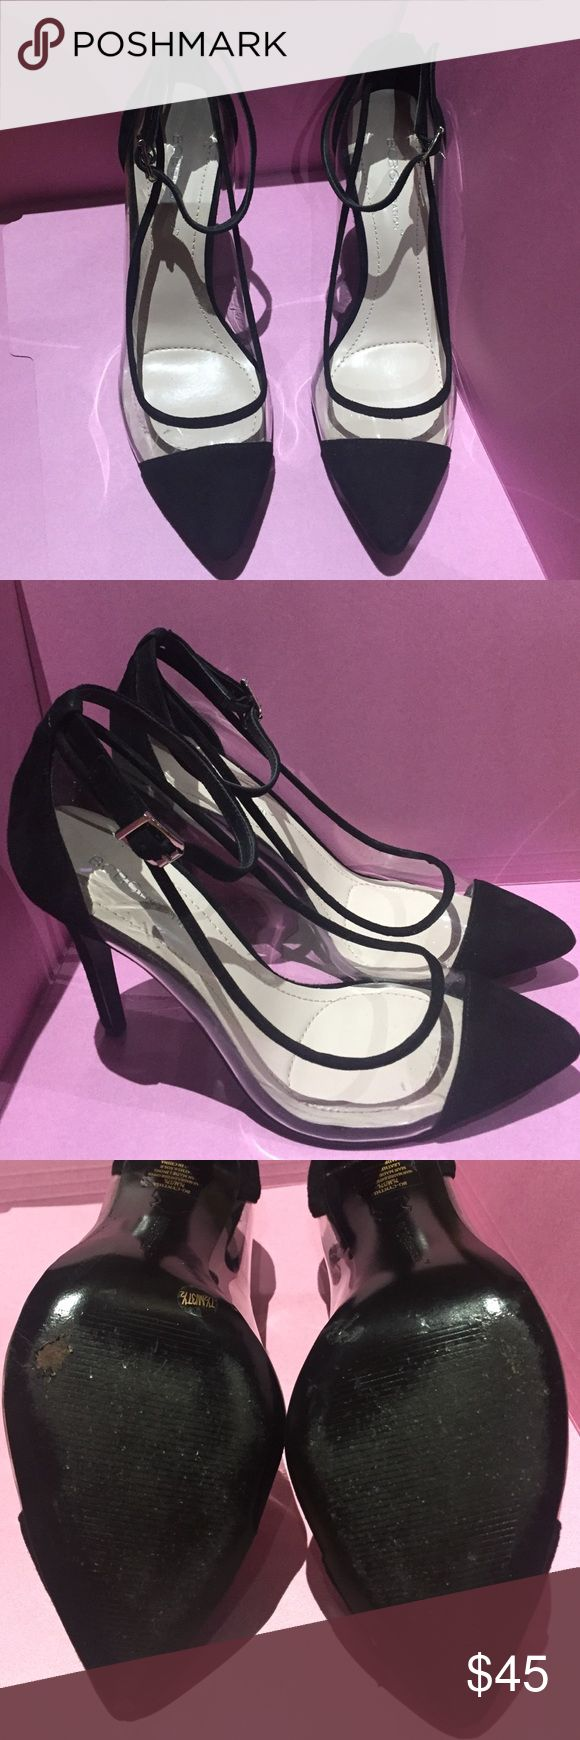 """BCBG black suede & clear heels size 7 1/2 BCBG black suede & clear heel. Size 7 1/2  4"""" heigh. Very good shape other that one of them is a worn on the bottom shown in the picture. PLEASE ASK ALL QUESTIONS PRIOR TO PURCHASE. I AM NOT RESPONSIBLE FOR LOST OR DAMAGE PARCEL OR BUYERS DISSATISFACTION. BCBGeneration Shoes Heels"""